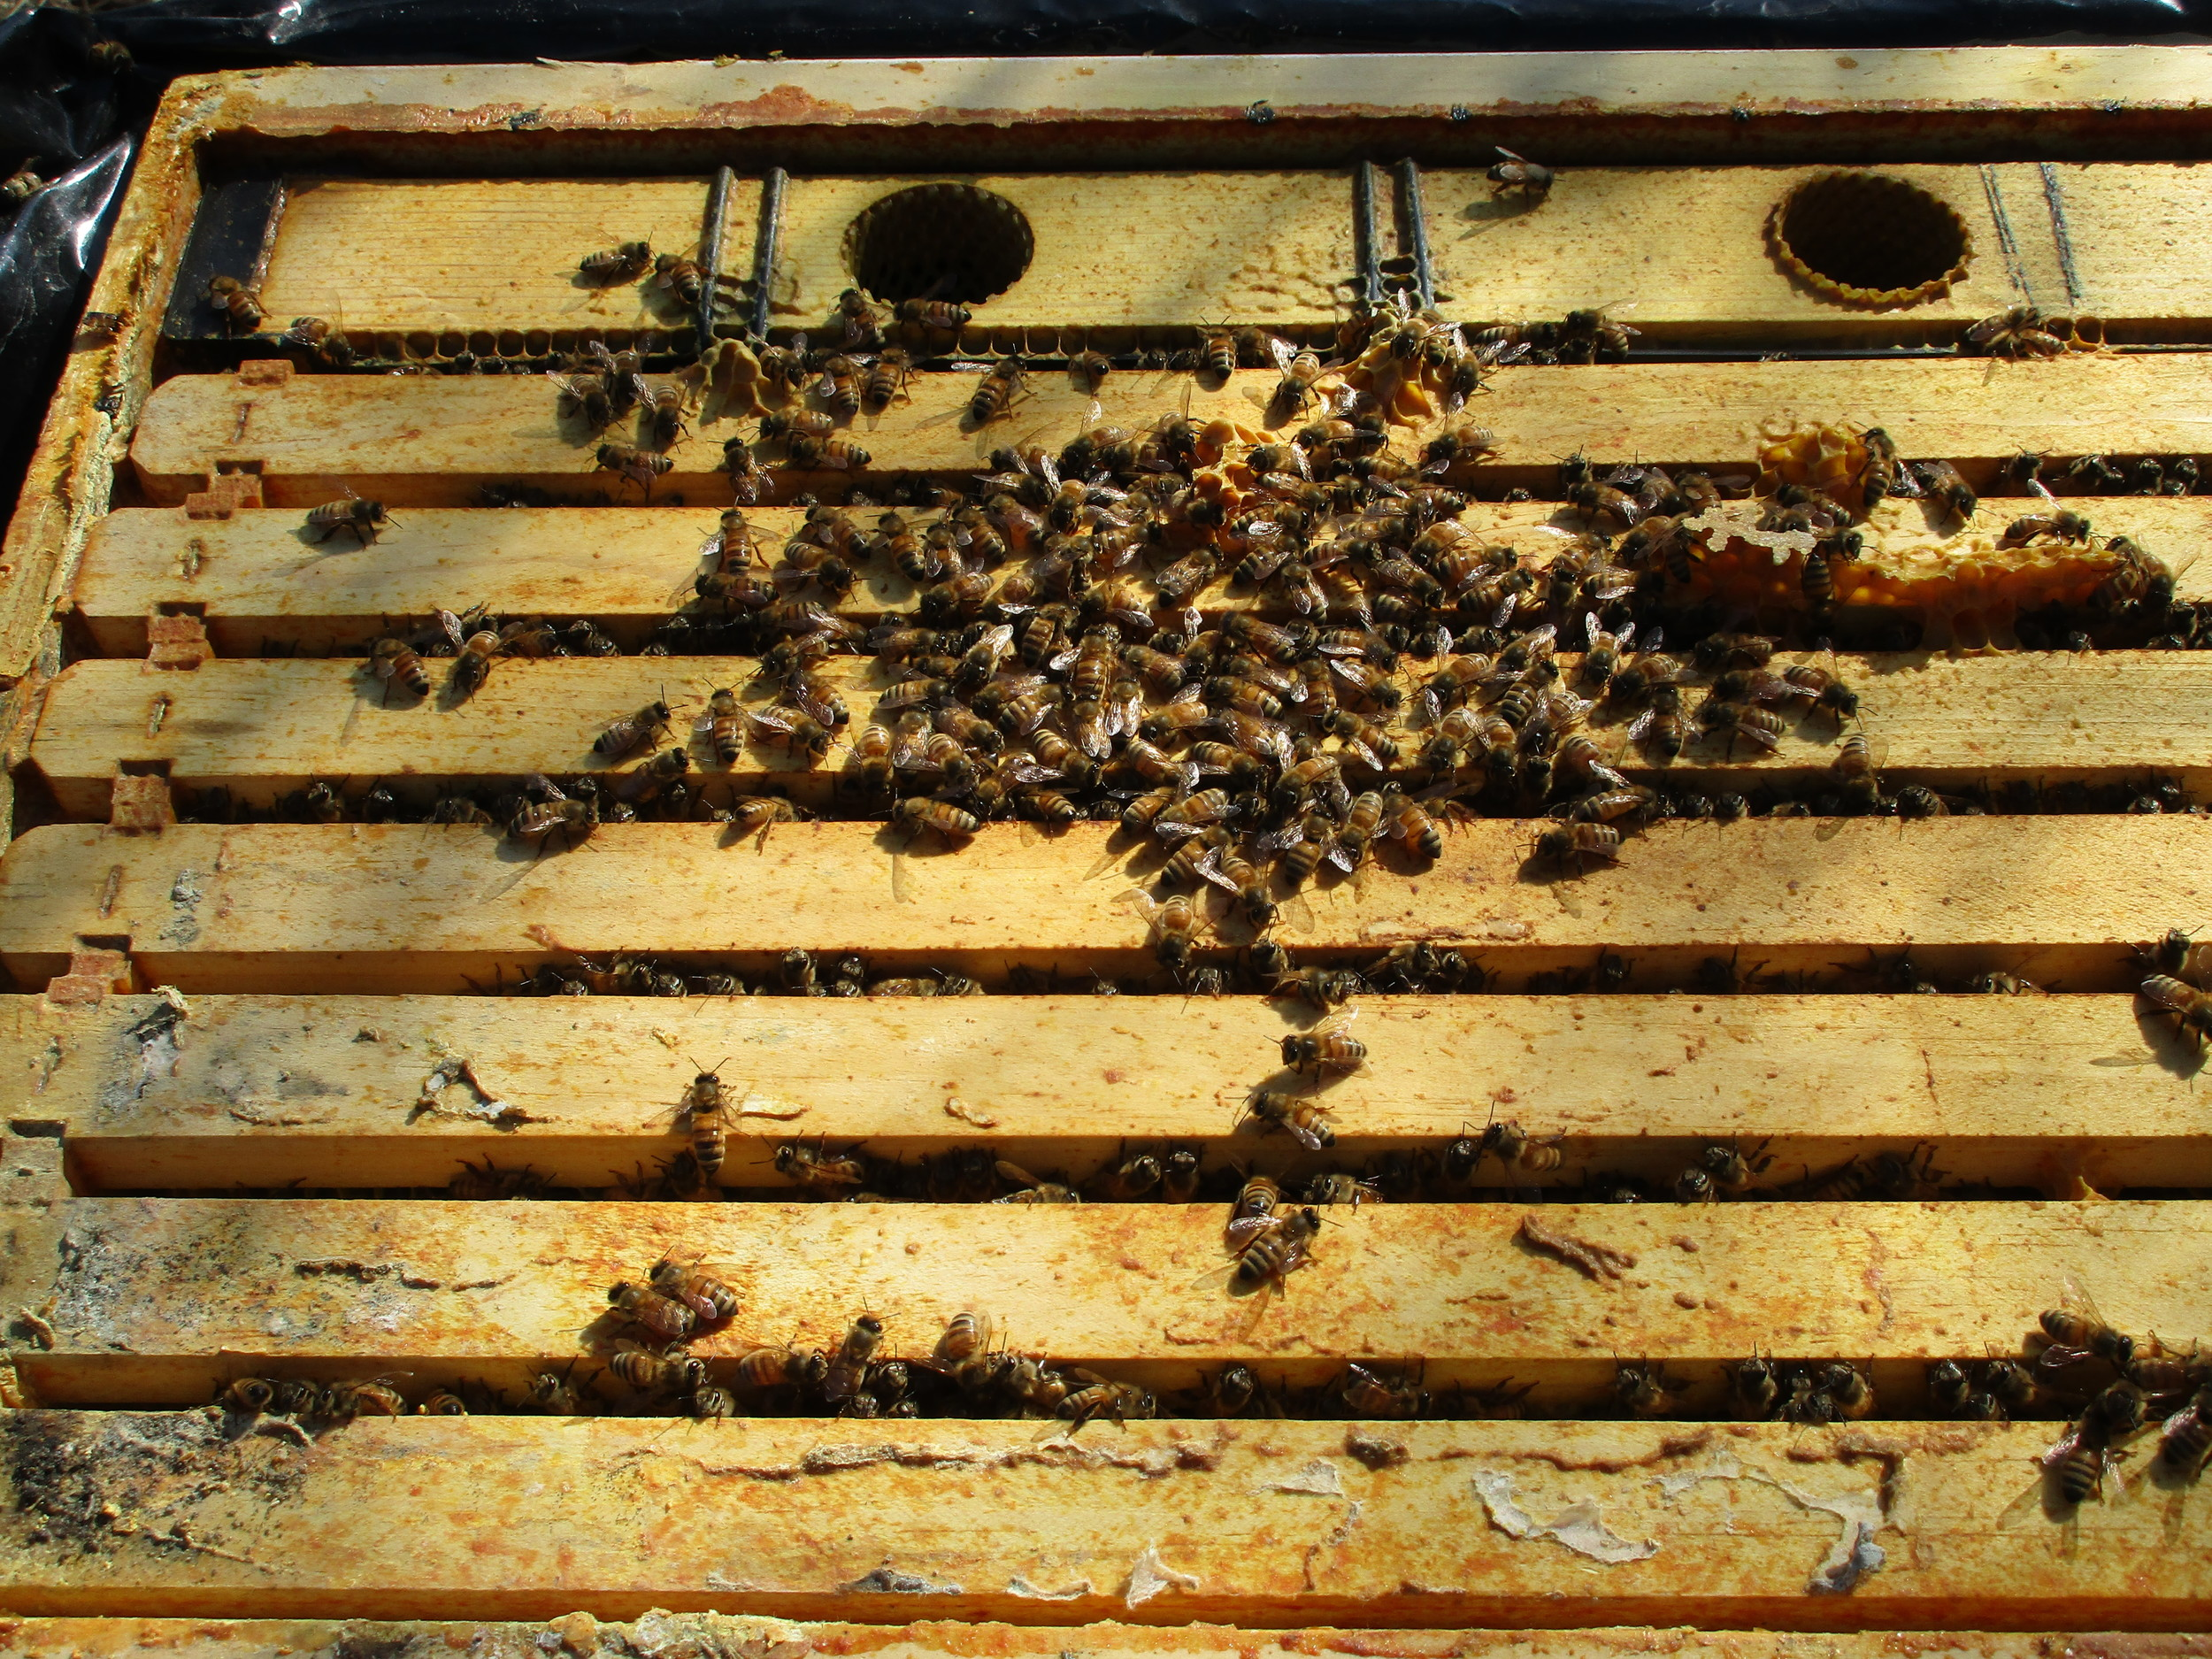 Feb 28th.  Opening up the hives for the first time since the fall. Looks good!